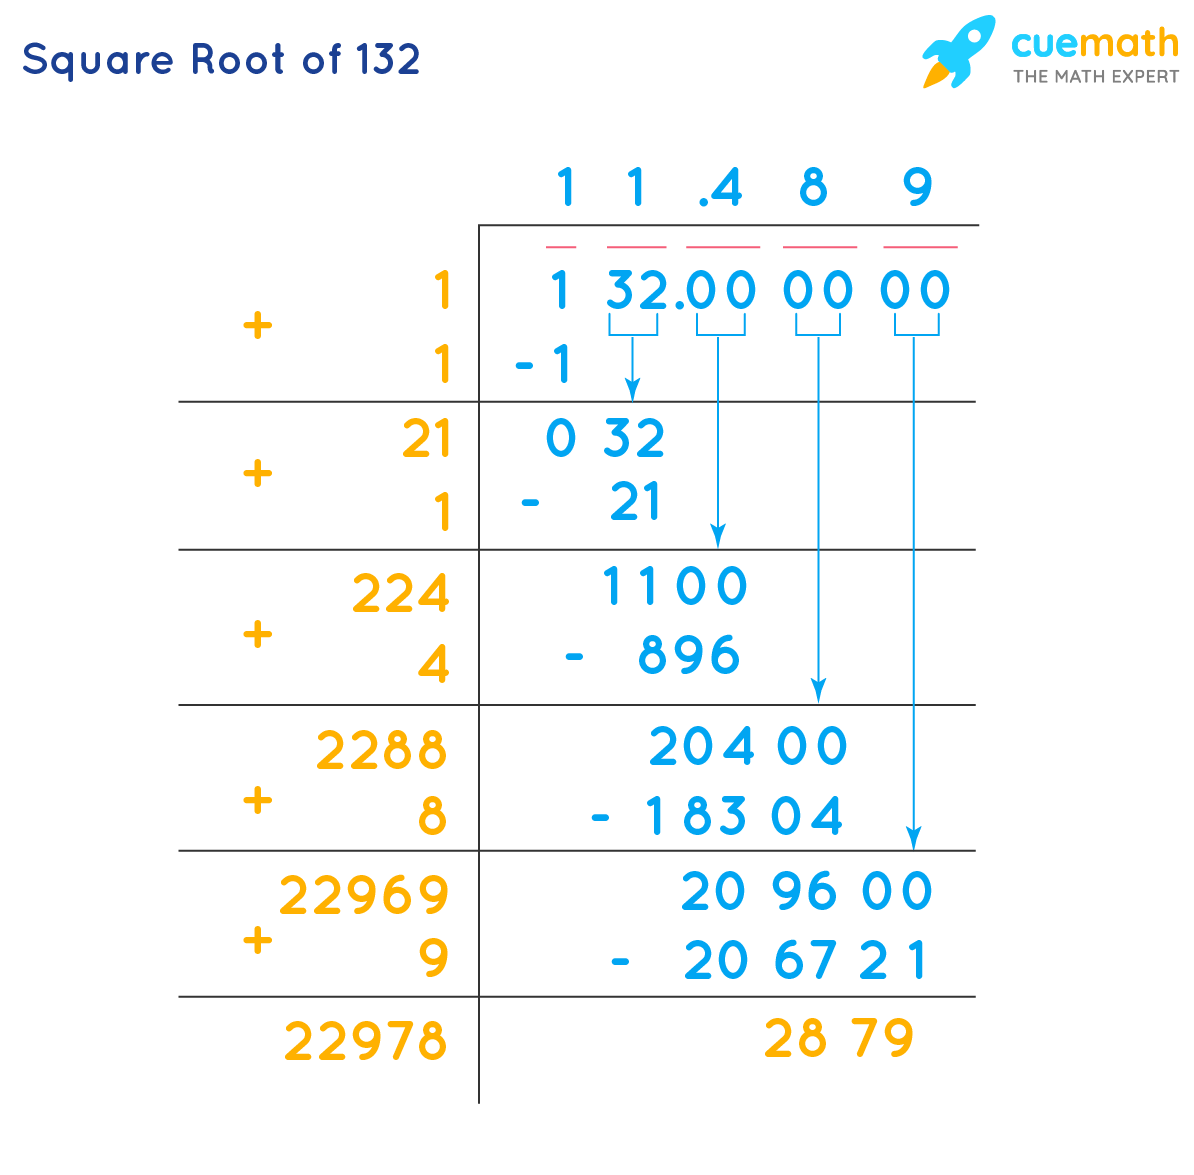 Square root of 132